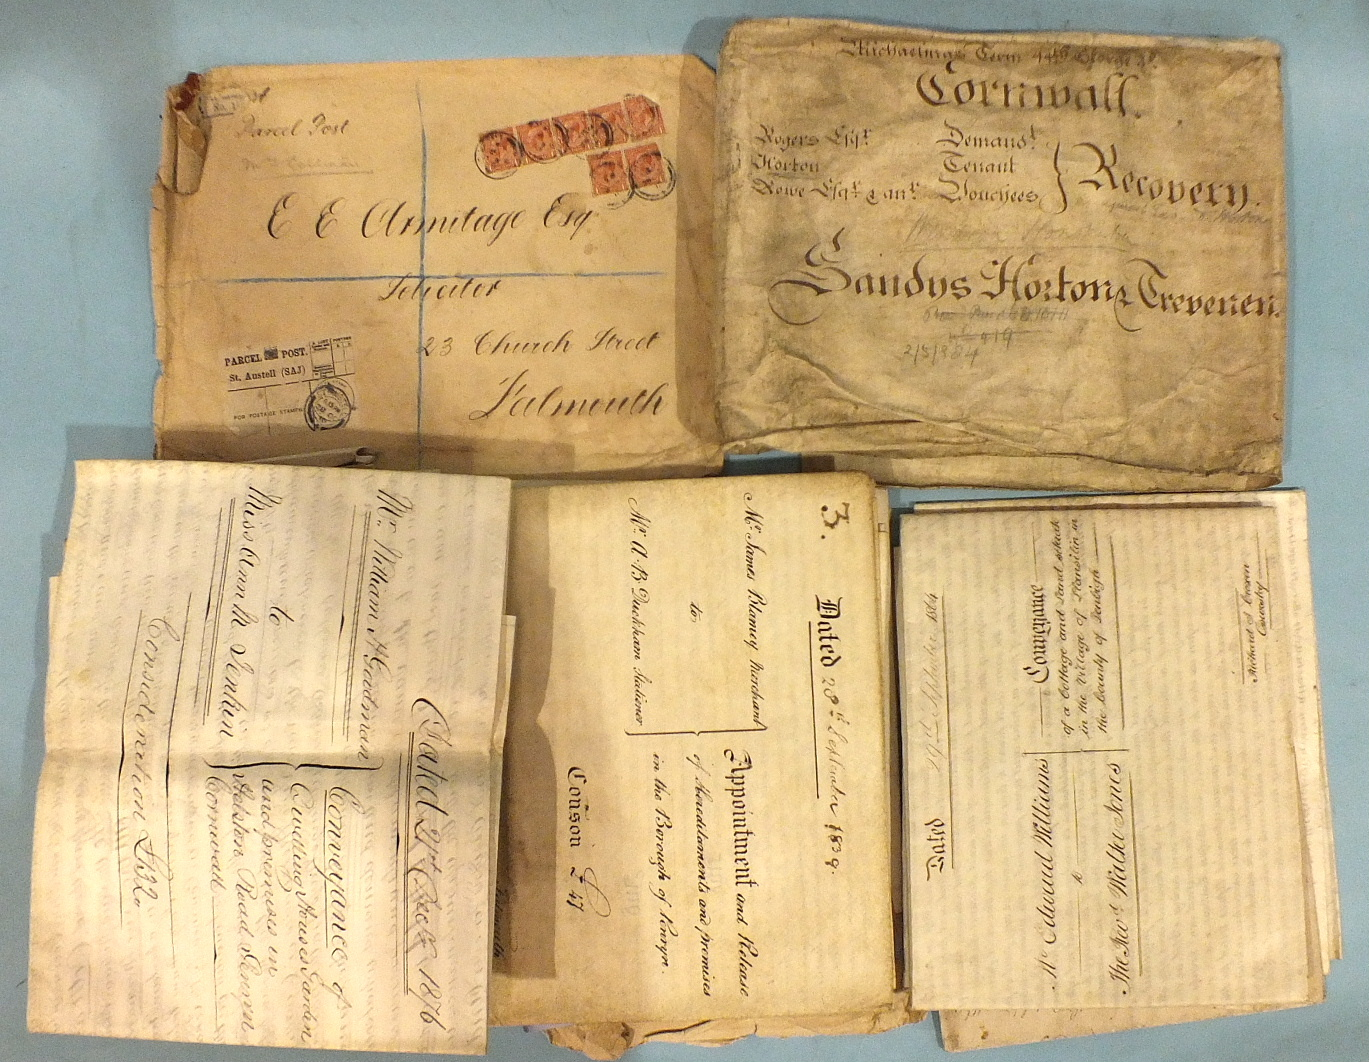 Lot 149 - A quantity of 18th and 19th century deeds, indentures, etc, written on vellum and paper, including